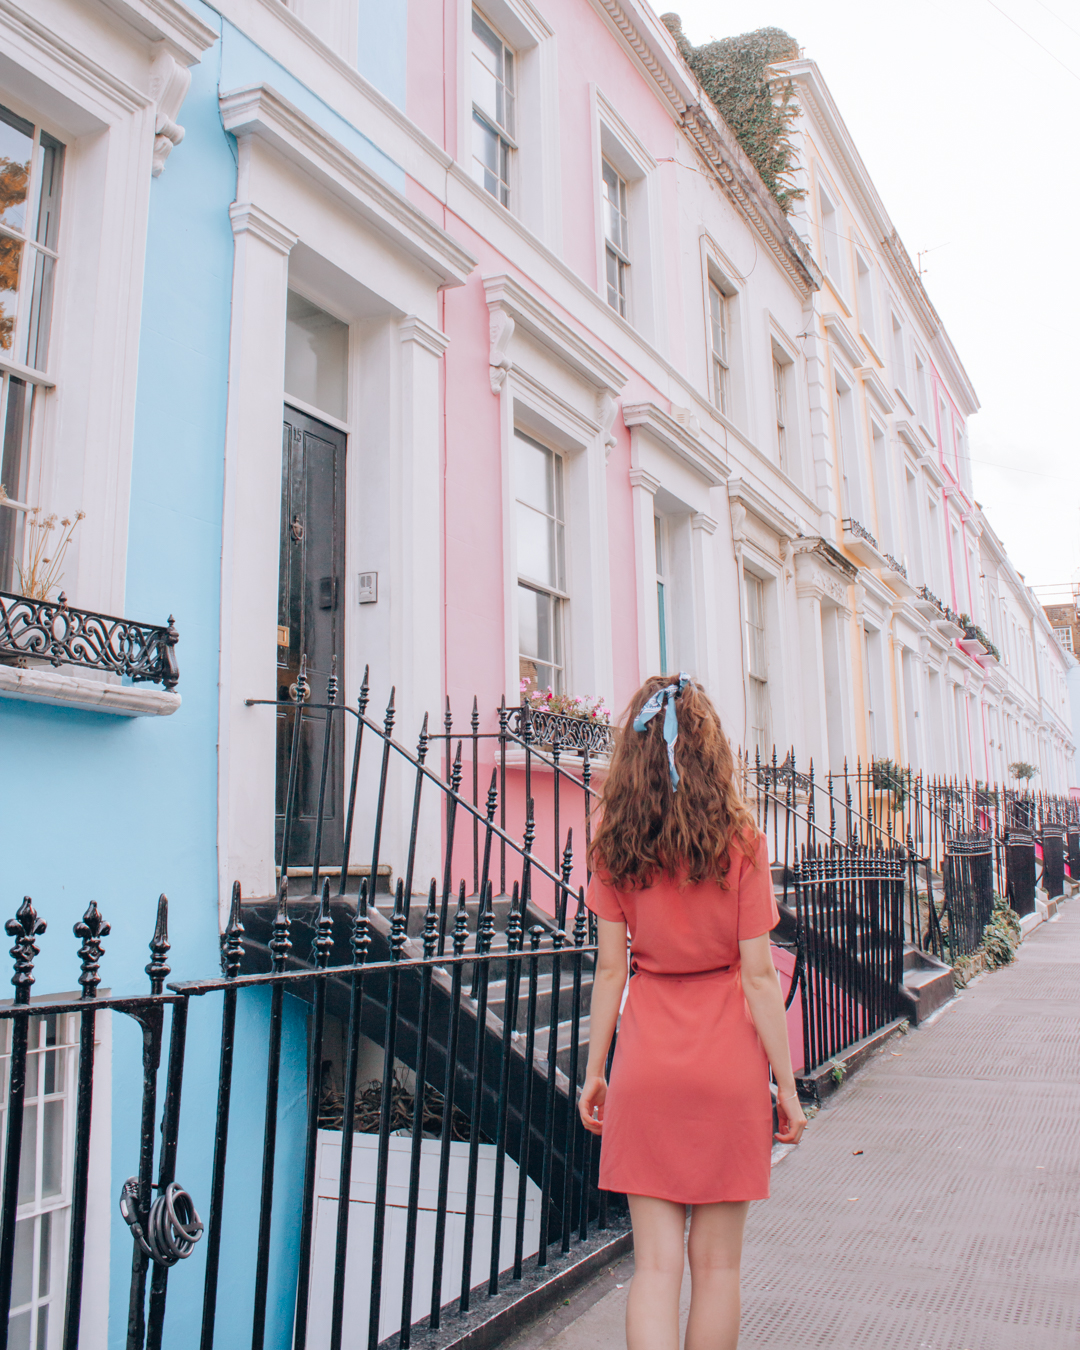 Instagrammable blue and pink houses at Denbigh Terrace in London